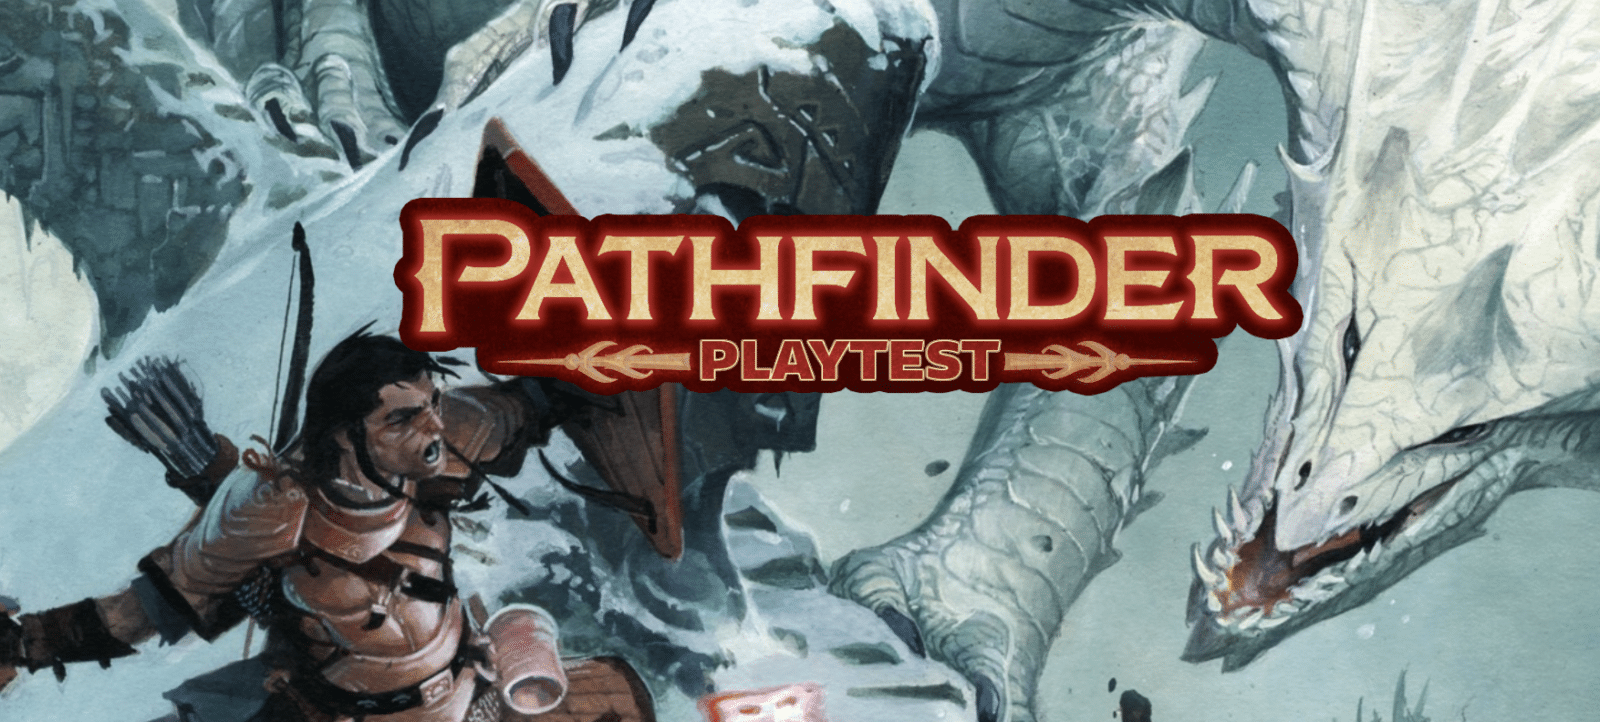 zenith games the comprehensive pathfinder guides guide - 1600×722